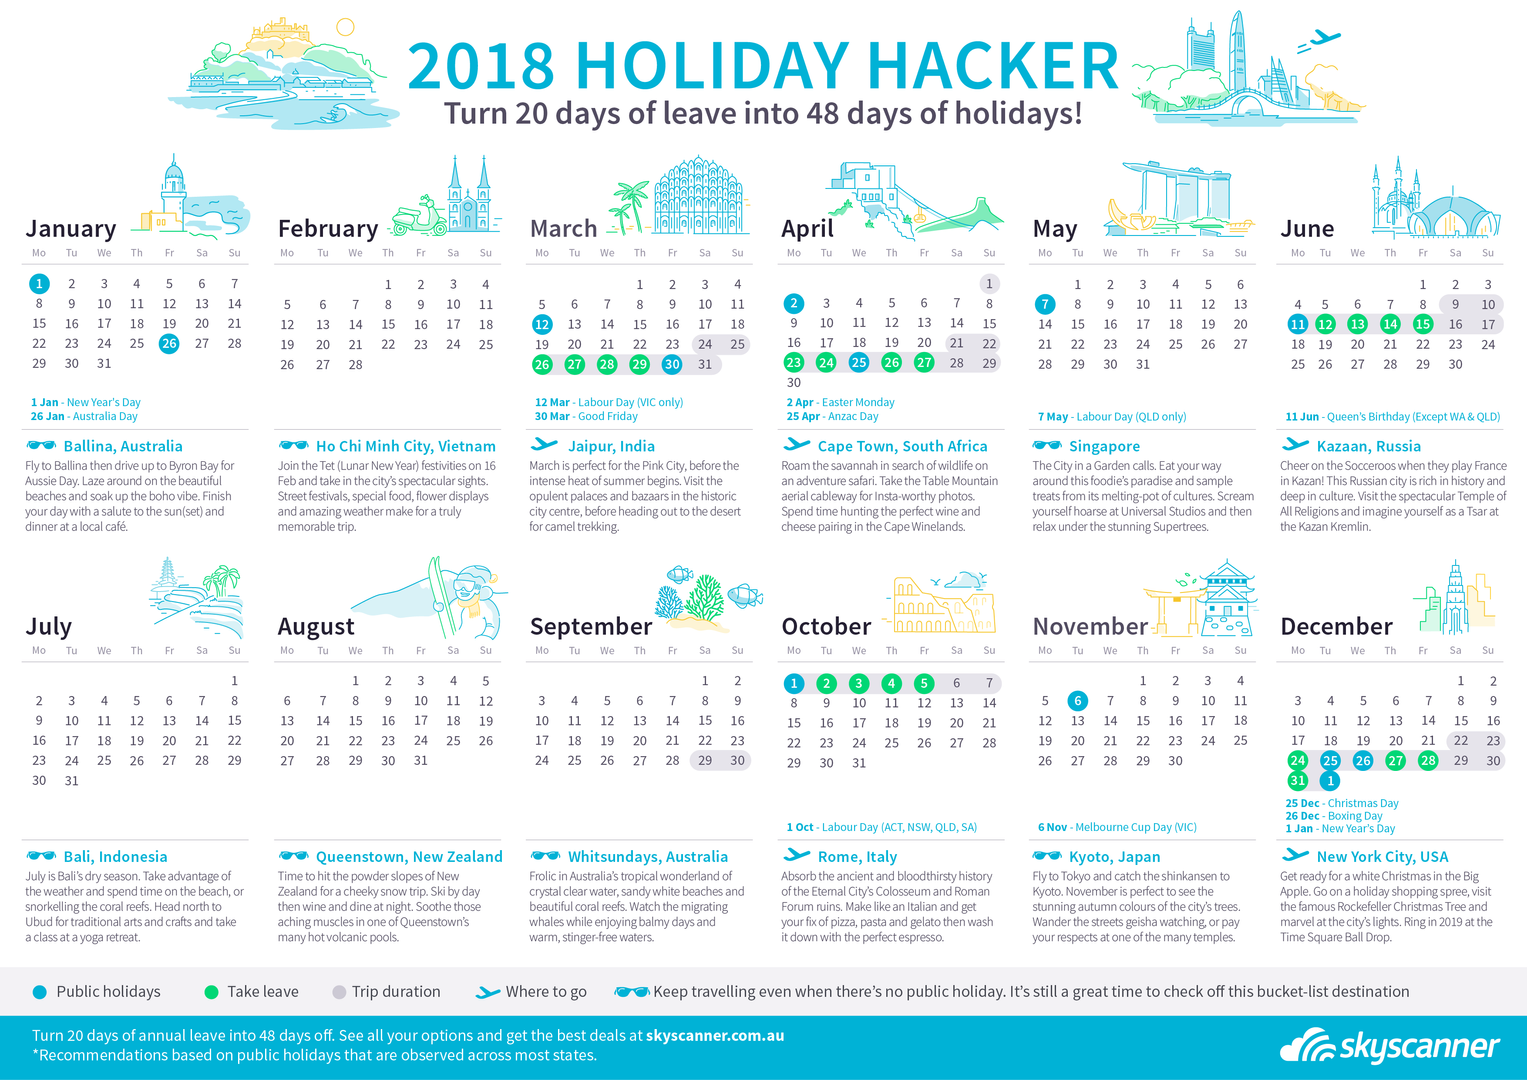 2018 Holiday Hacker - turn 20 days of leave into 48 days of